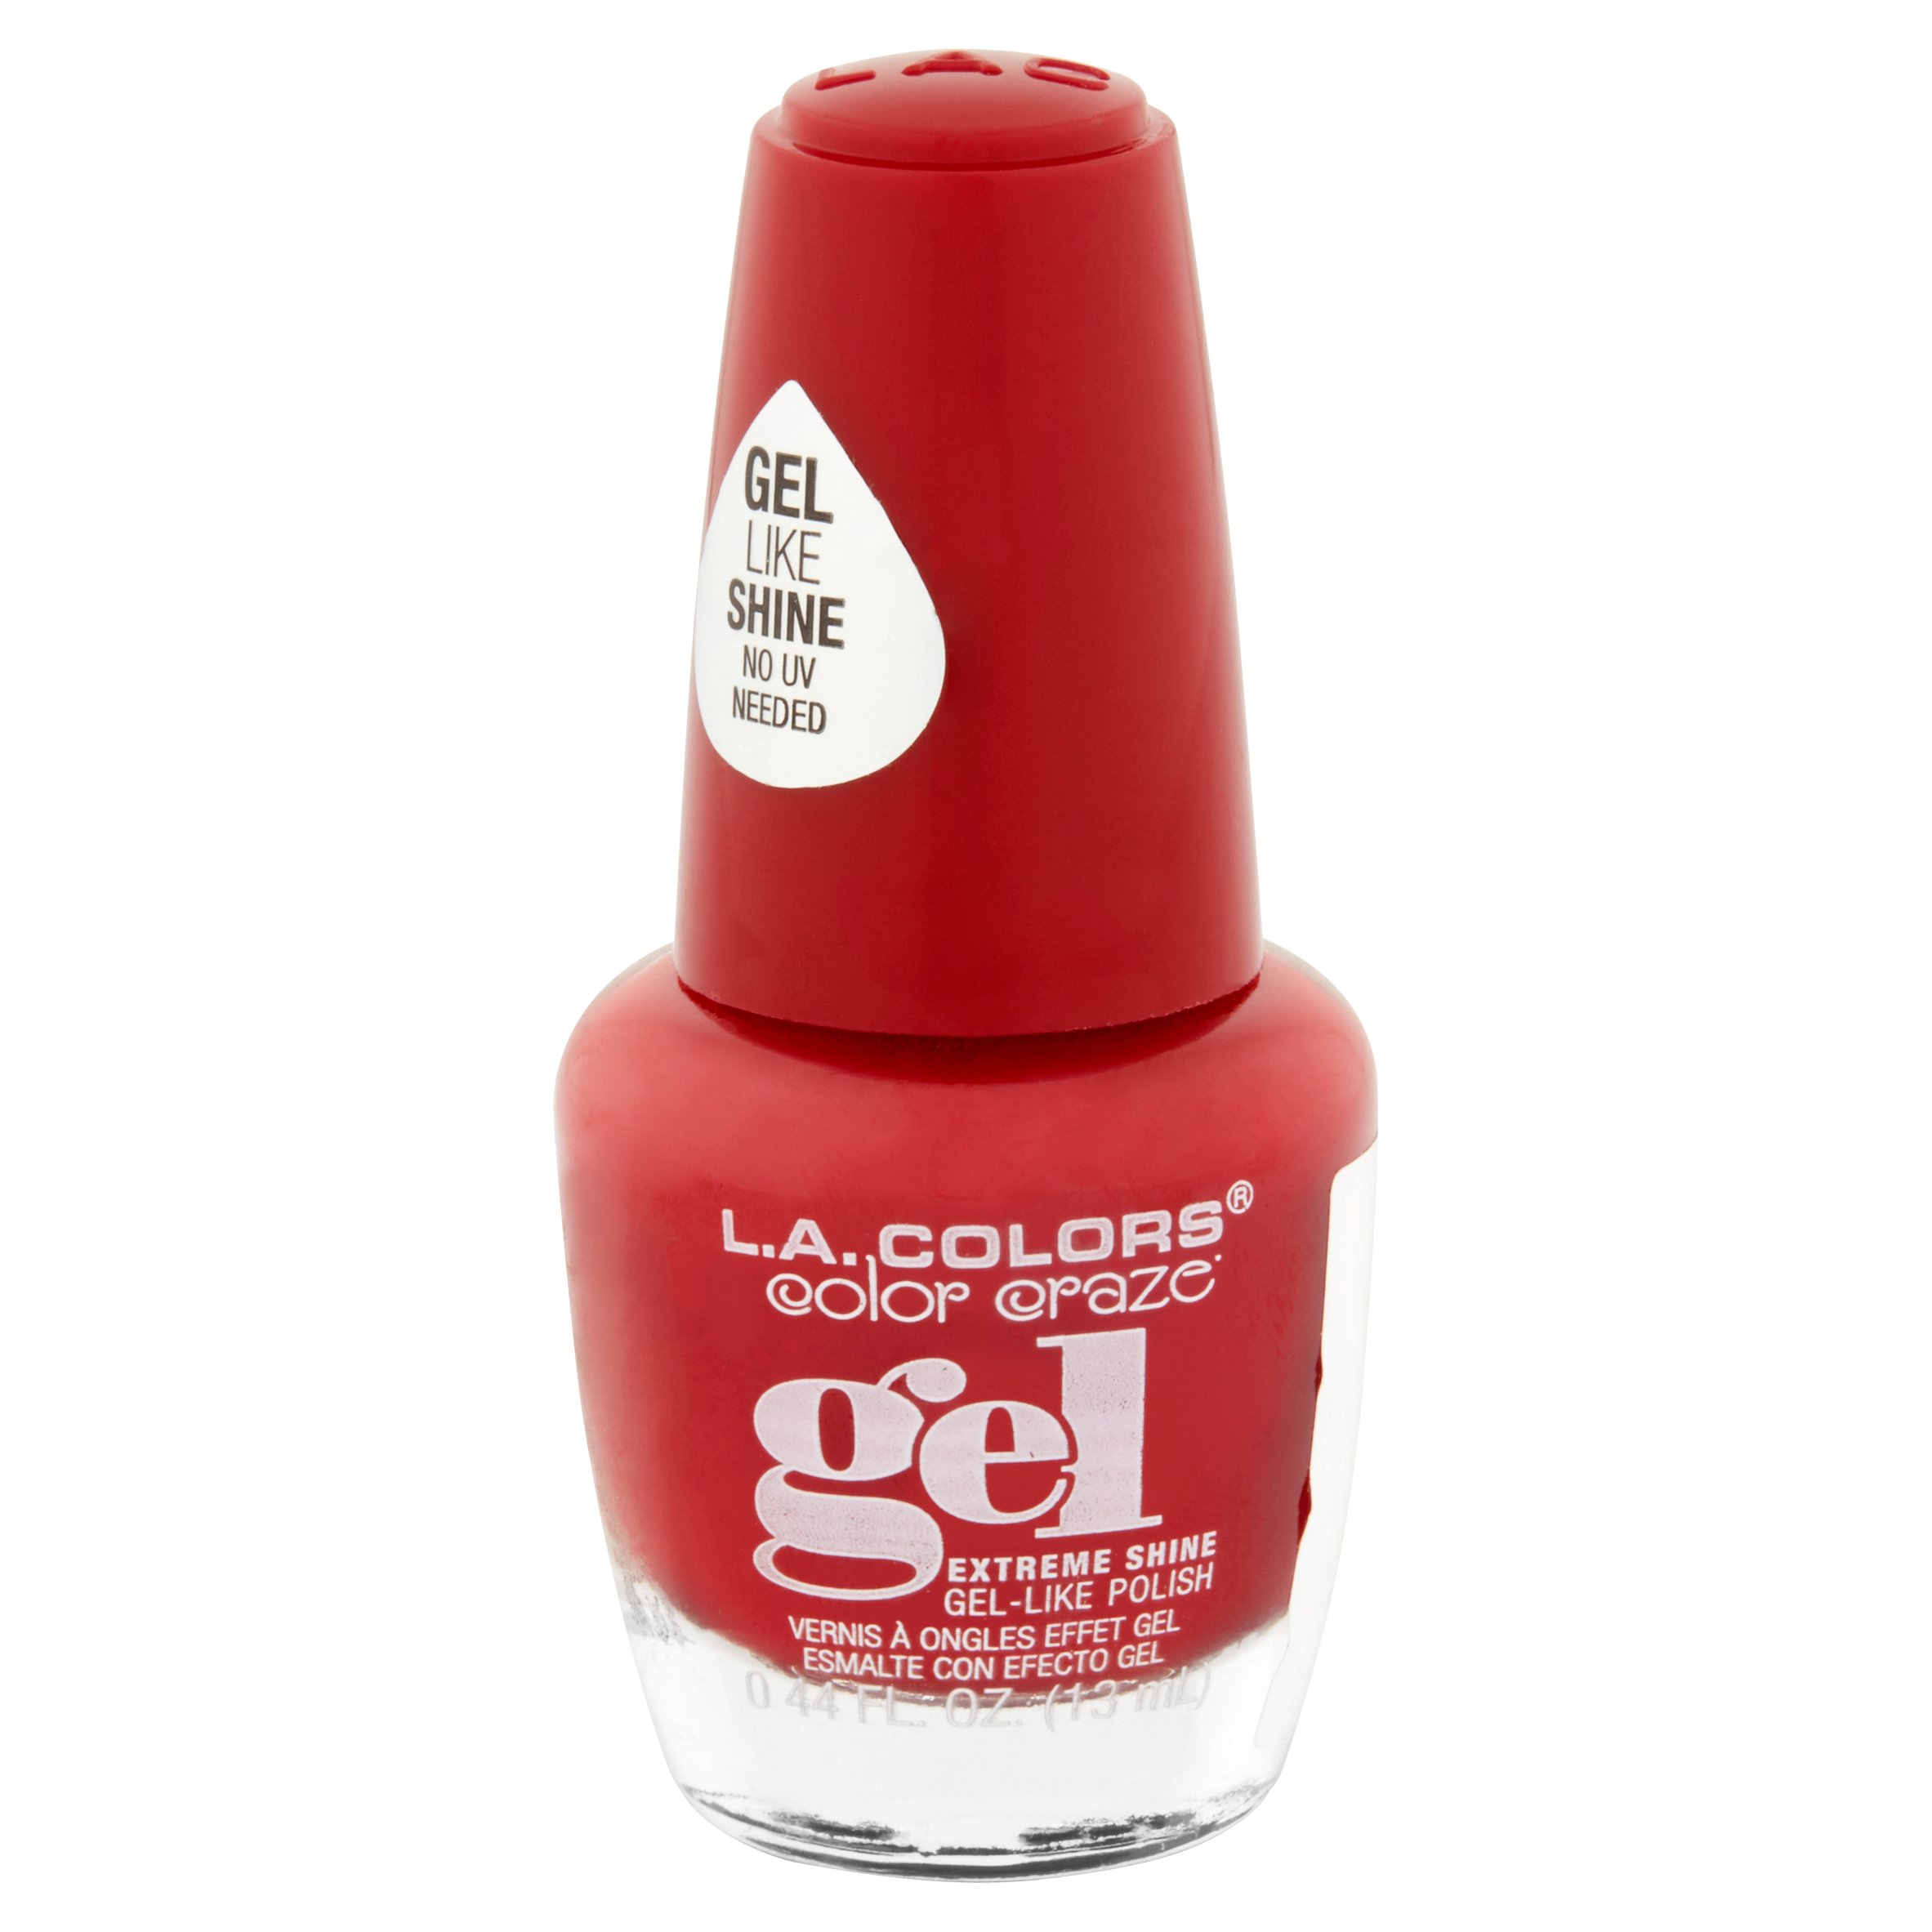 LA Colors Gel Shine Nail Polish, Fierce, 0.44 Oz - Walmart.com